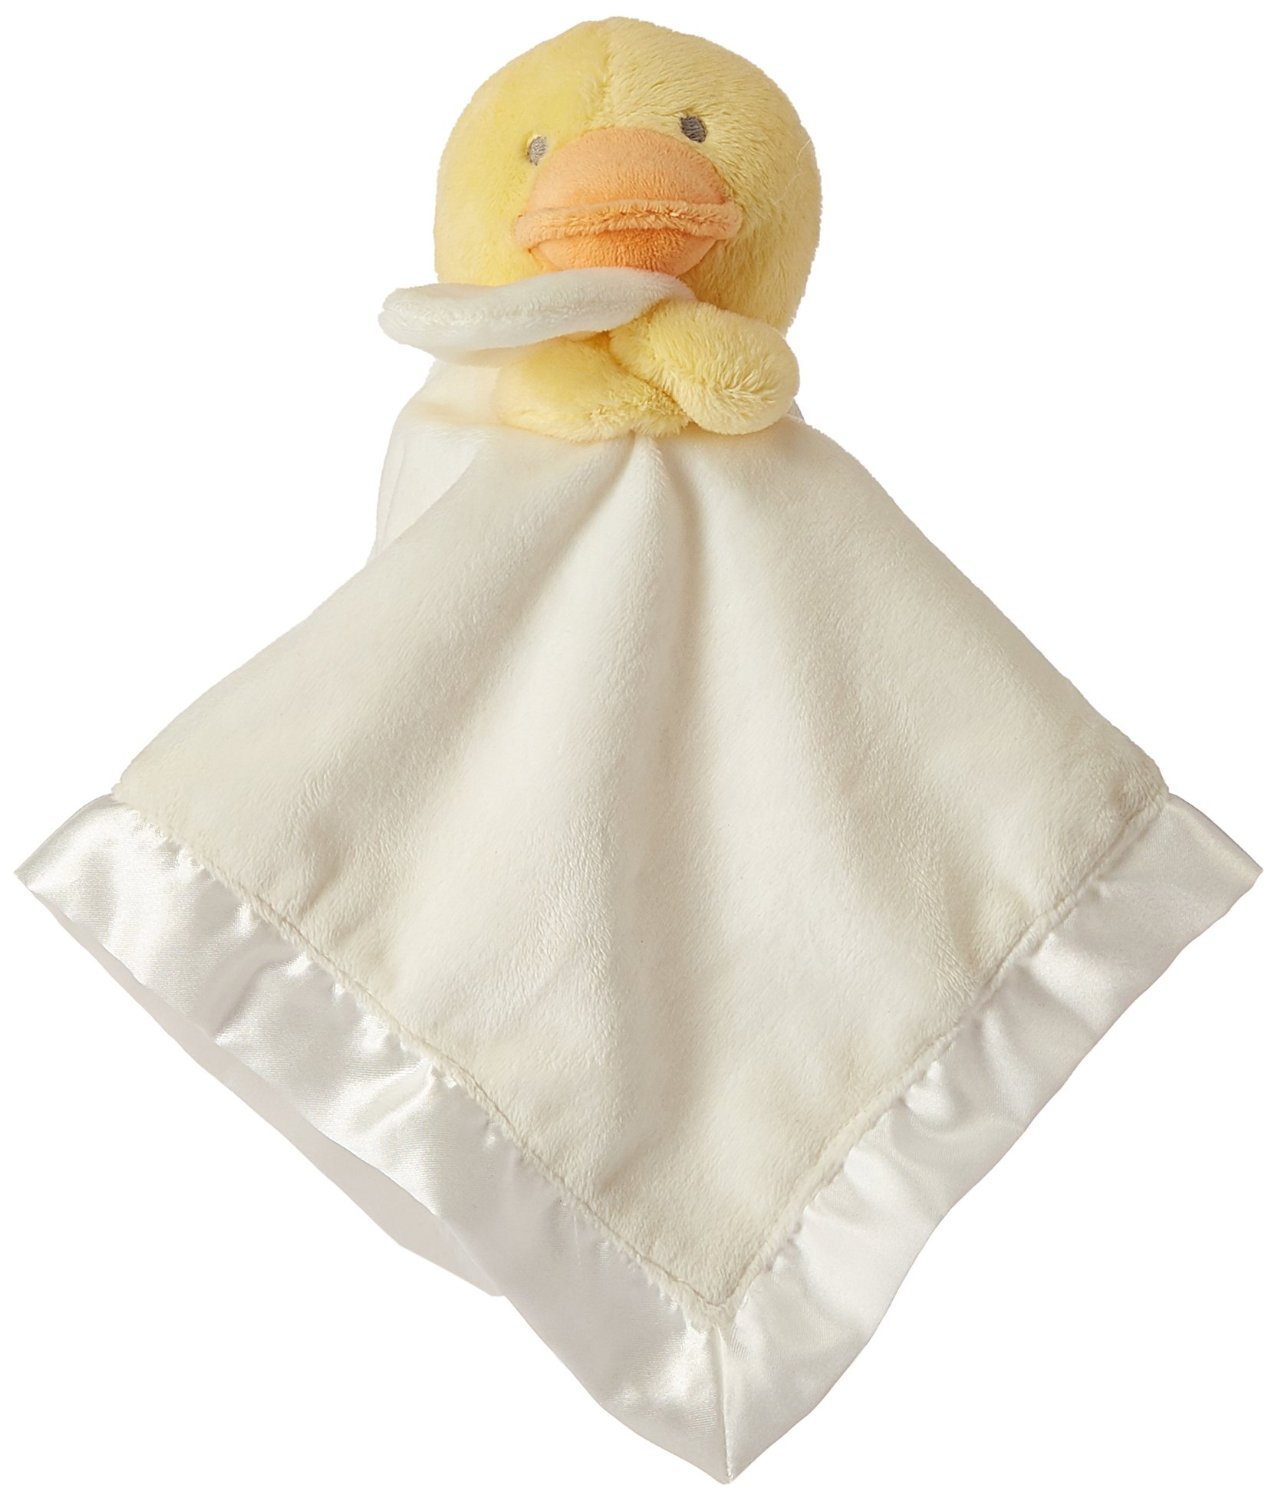 Carter's Baby Boy Girls Yellow Duck Security Blanket, Lovey, Nunu-baby shower gifts baby blankets security blankets discontinued baby security blankets carters blankets